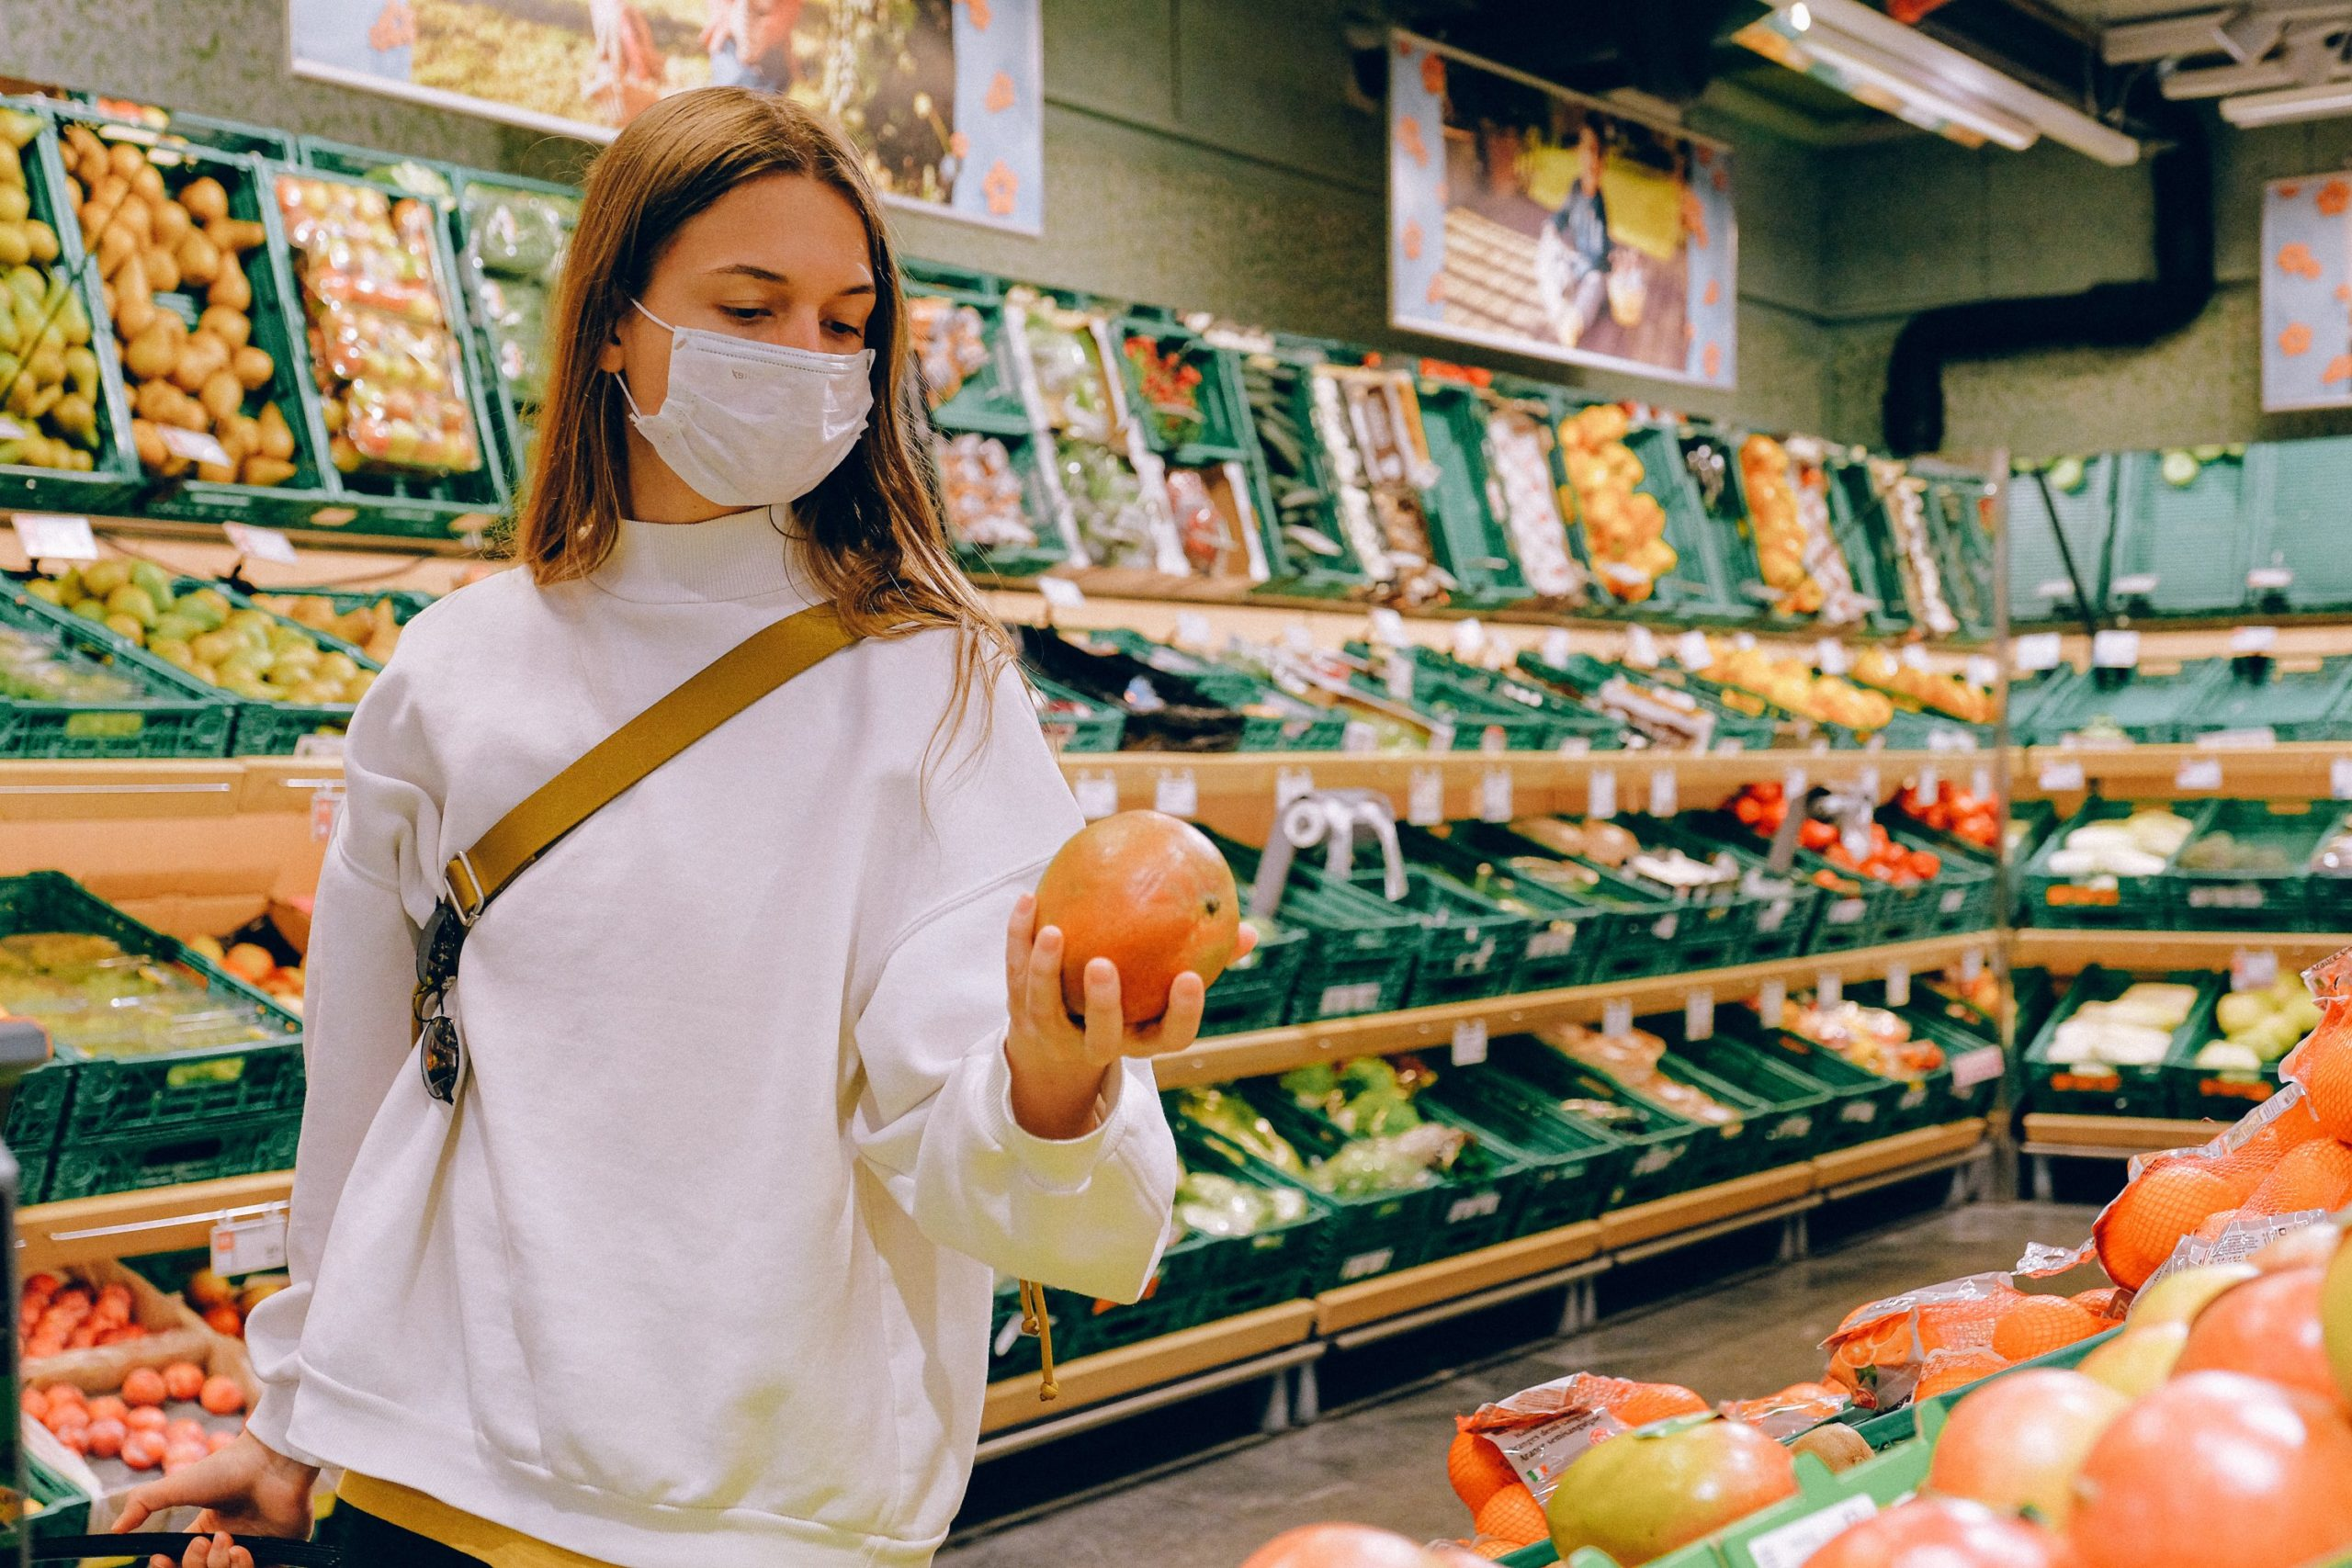 Organic Grocery store shopping DC Satire racism liberal White Fragility